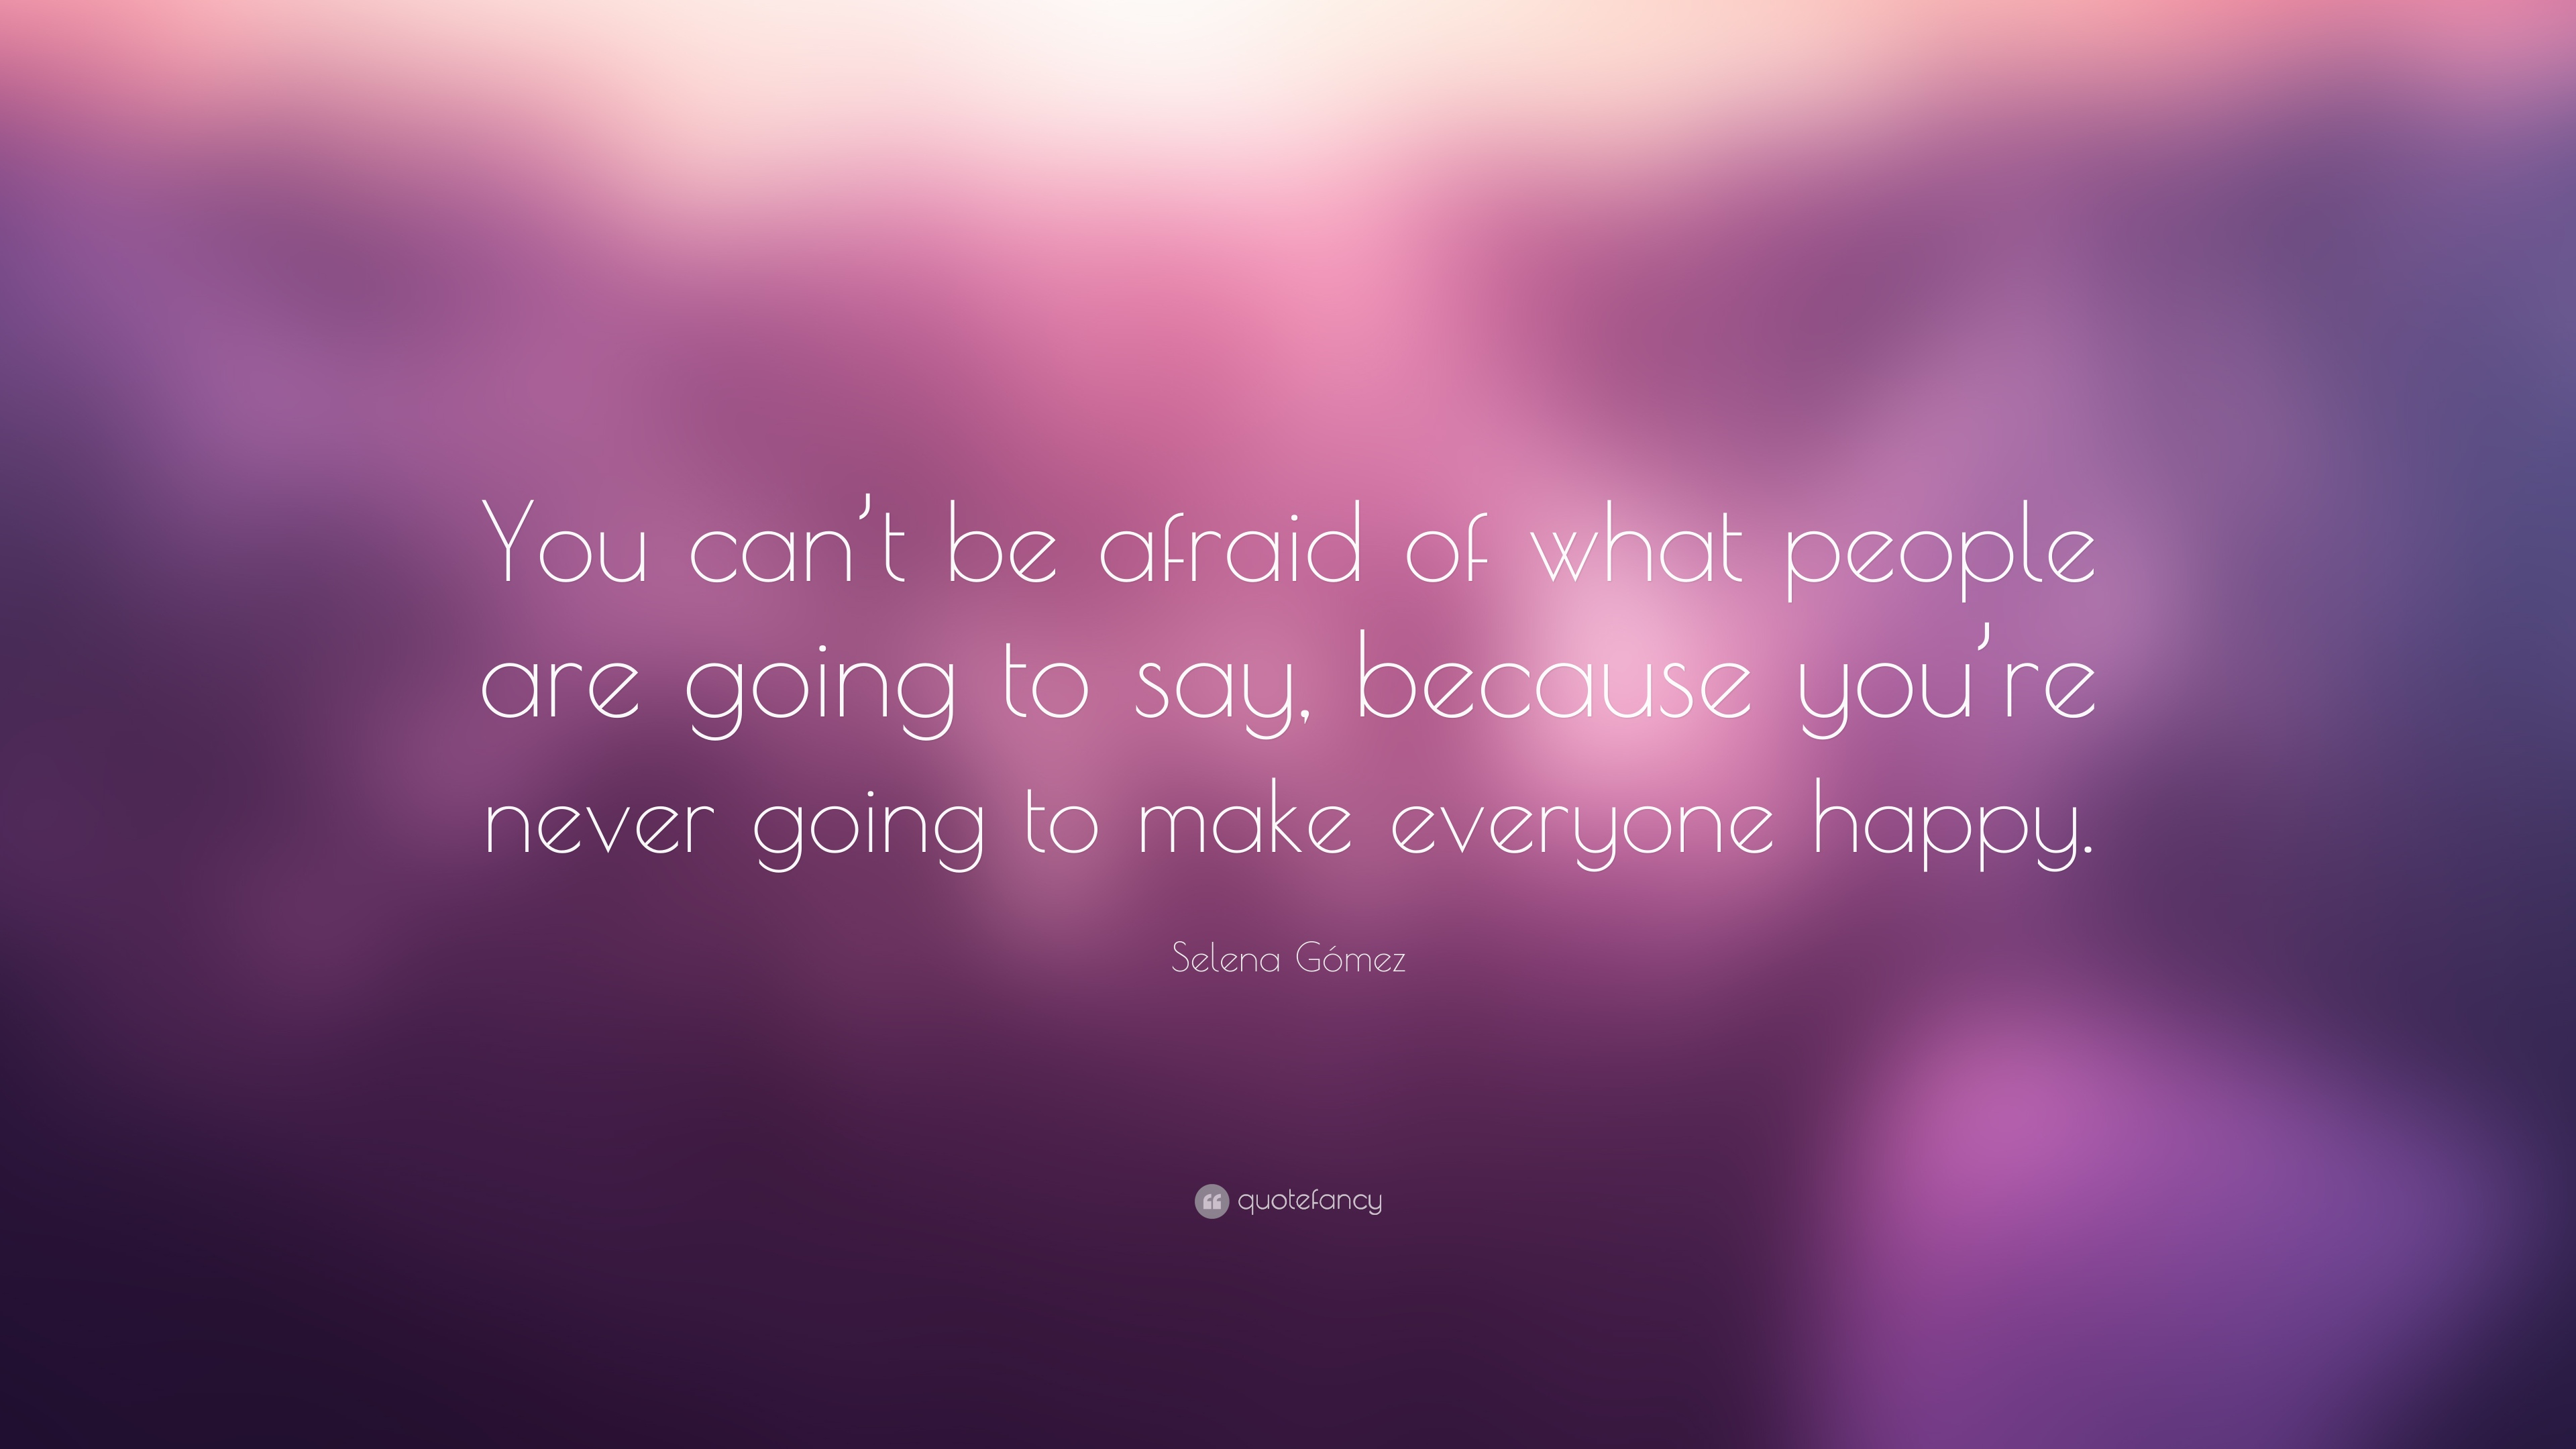 Selena Gómez Quote You Cant Be Afraid Of What People Are Going To